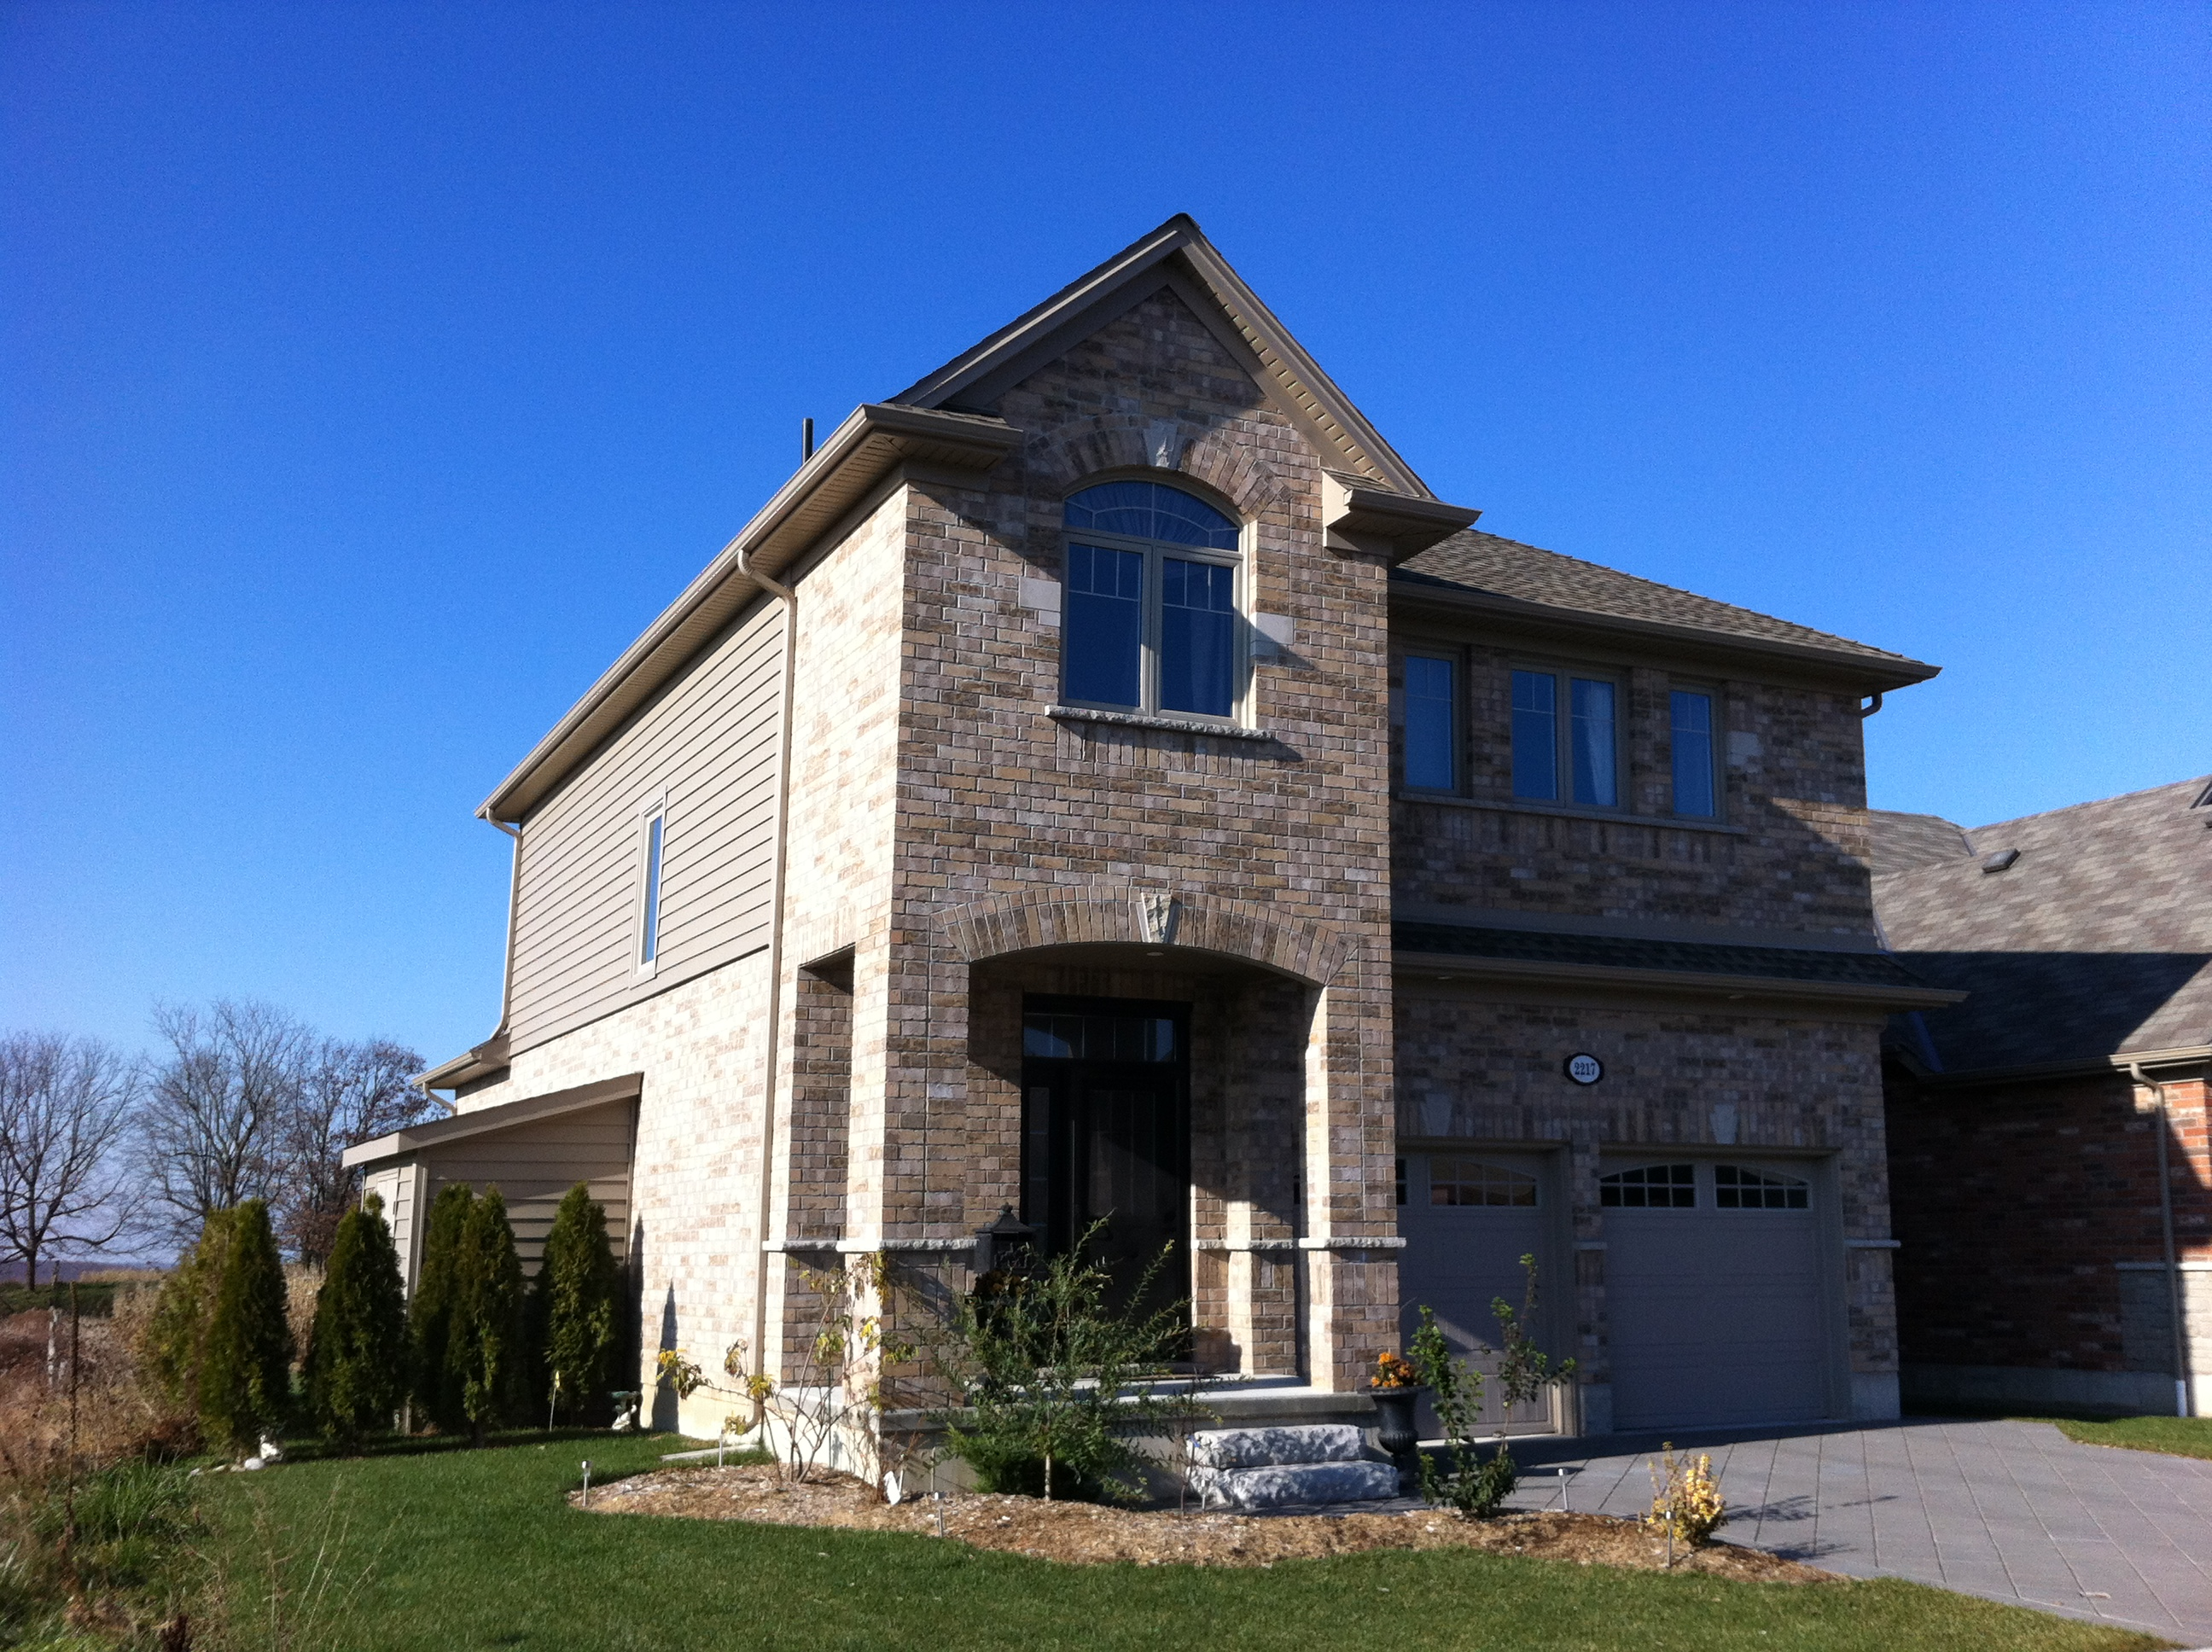 Insulated Backed Prodigy Siding, New Doors and Windows